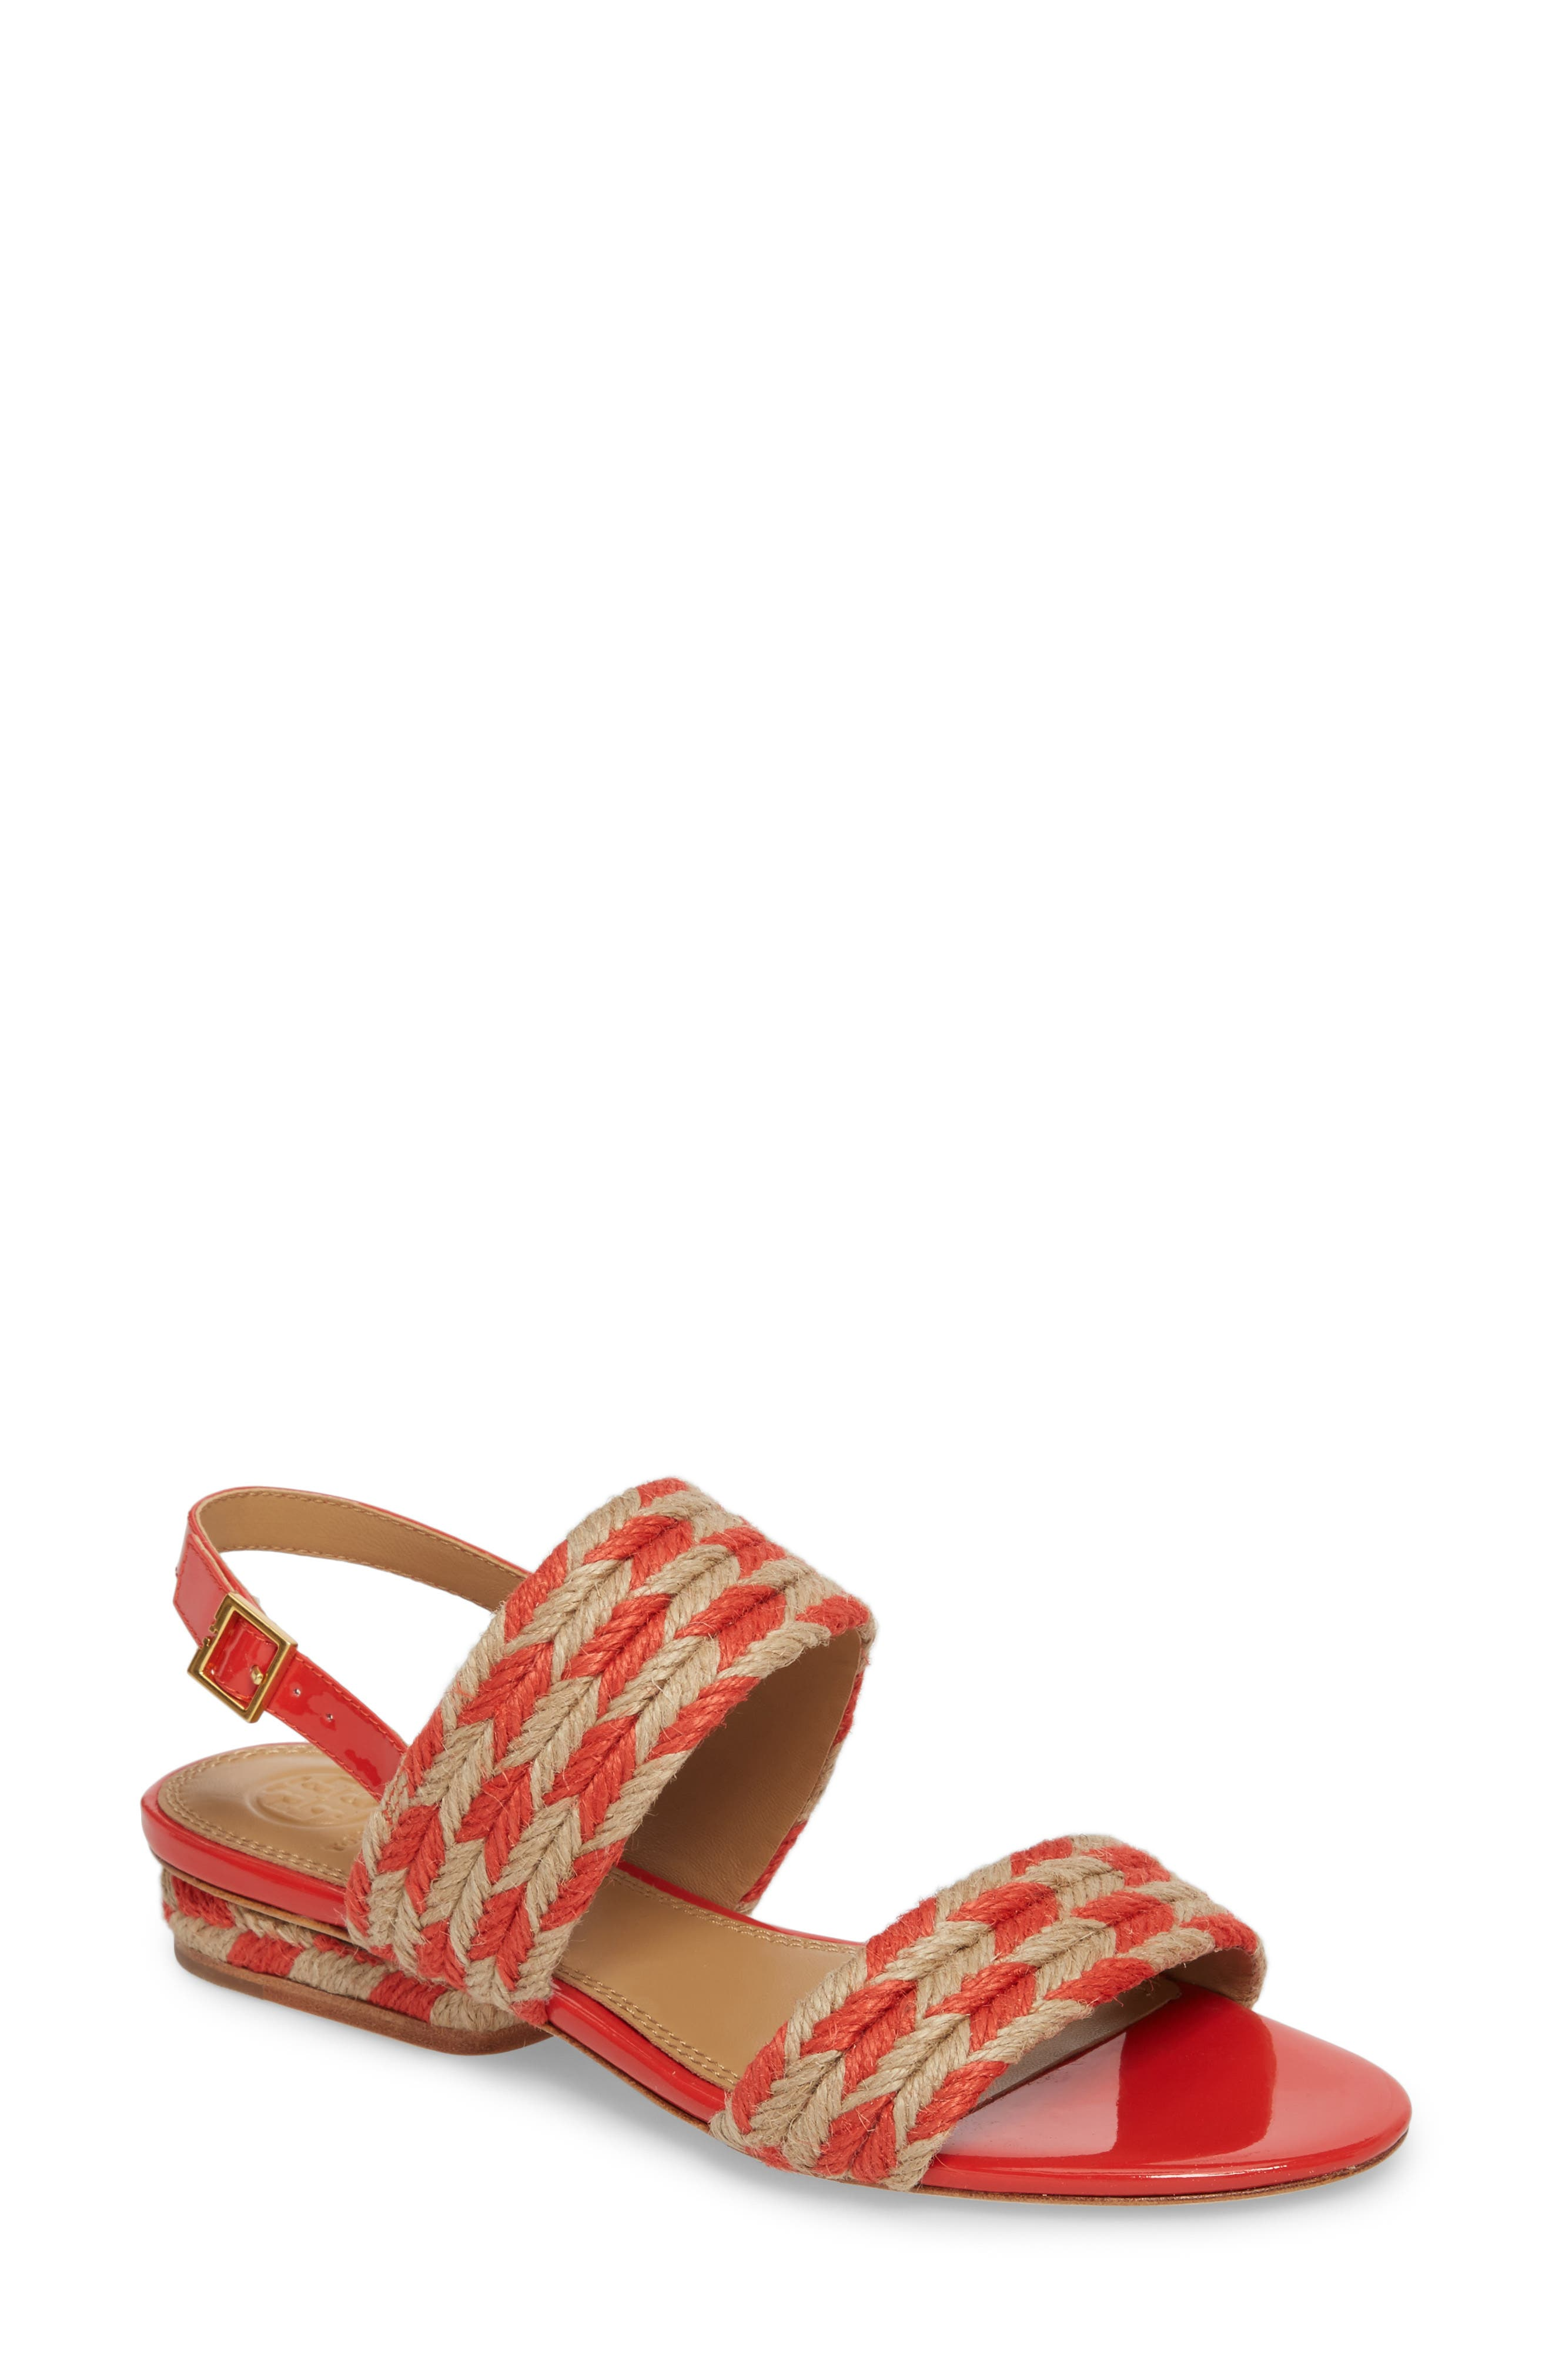 Lola Slingback Sandal,                         Main,                         color, Poppy Orange/ Perfect Ivory